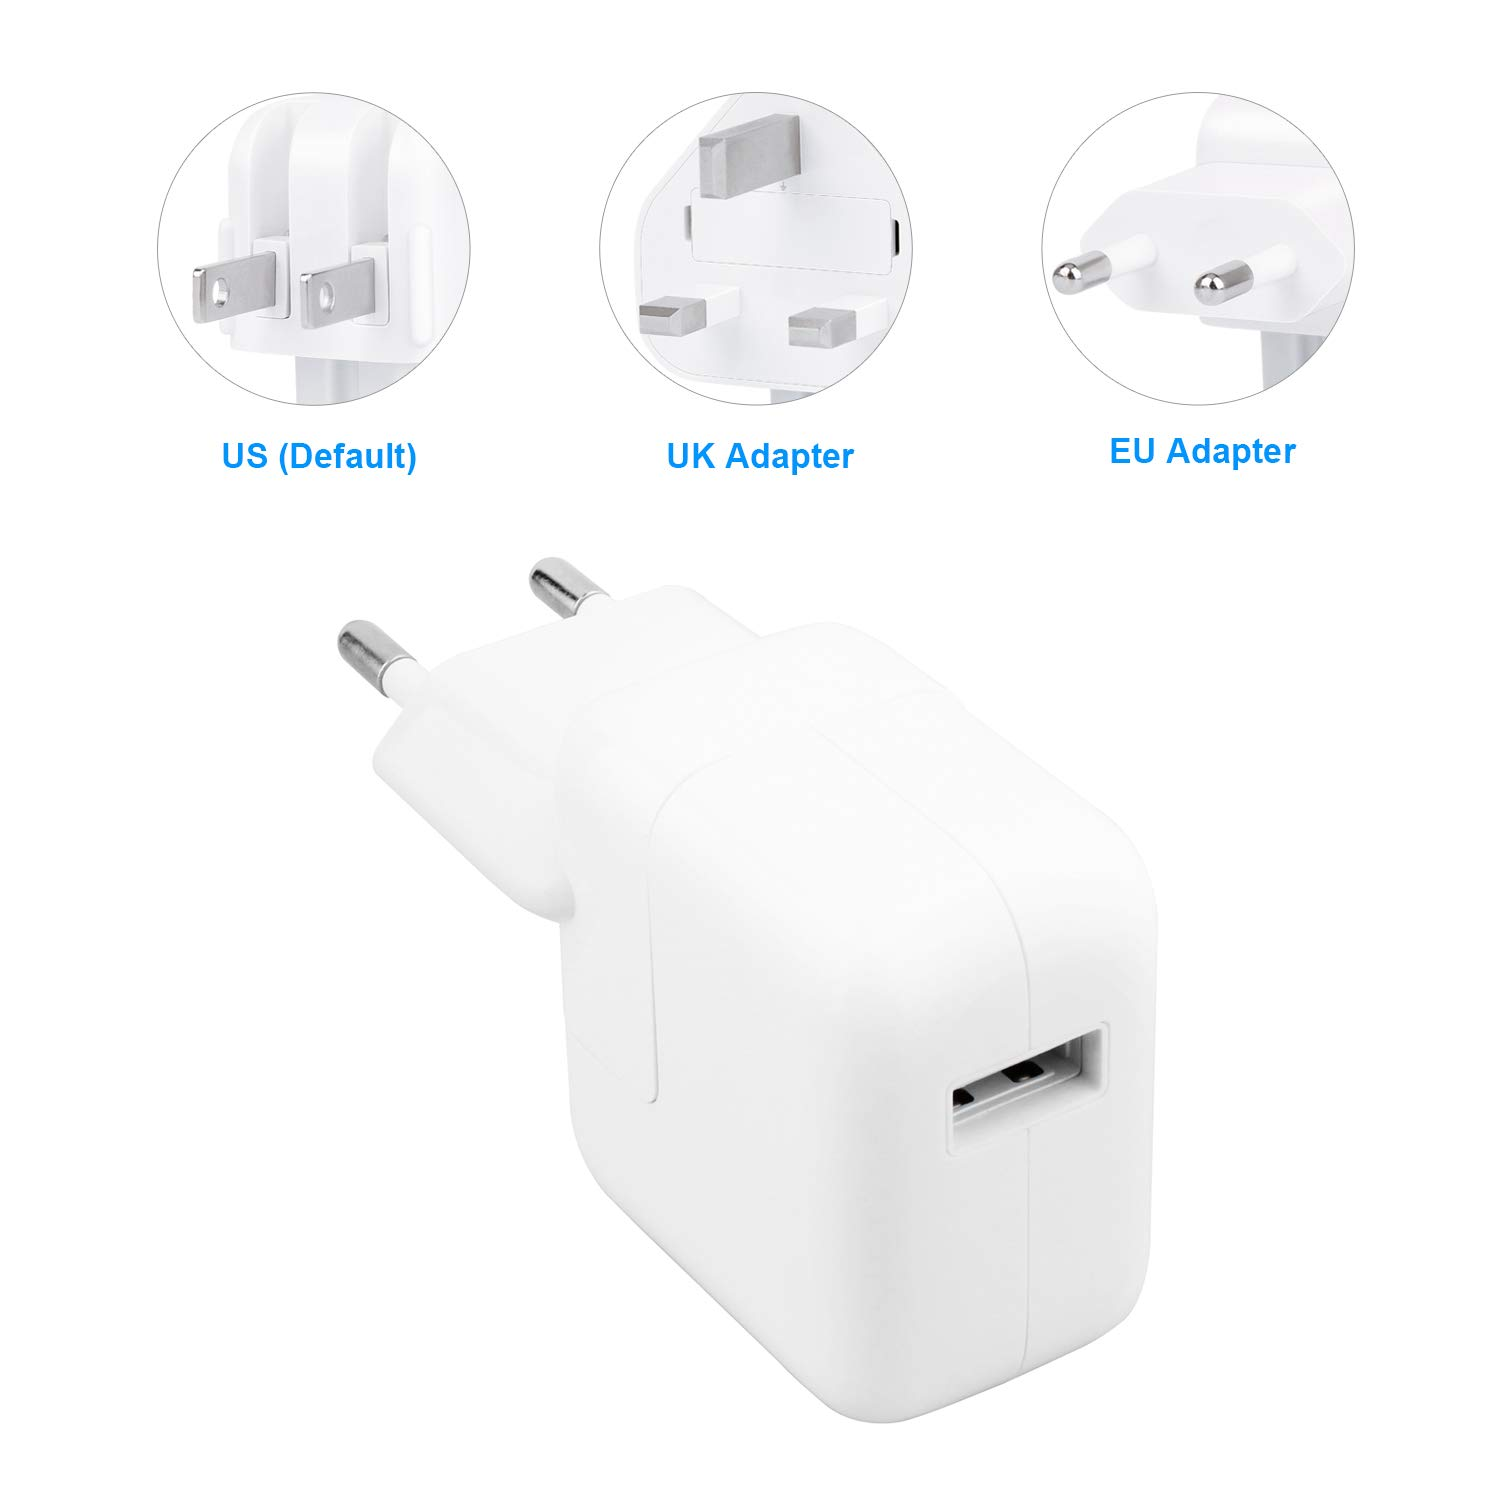 UrbanX 12W Cargador Portátil USB Power Adapter y USB Cable Compatible con iPad Pro 9.7/10.5/12.9 Air 1/2 Mini 2/3/4 - con UK y US Intercambiables ...